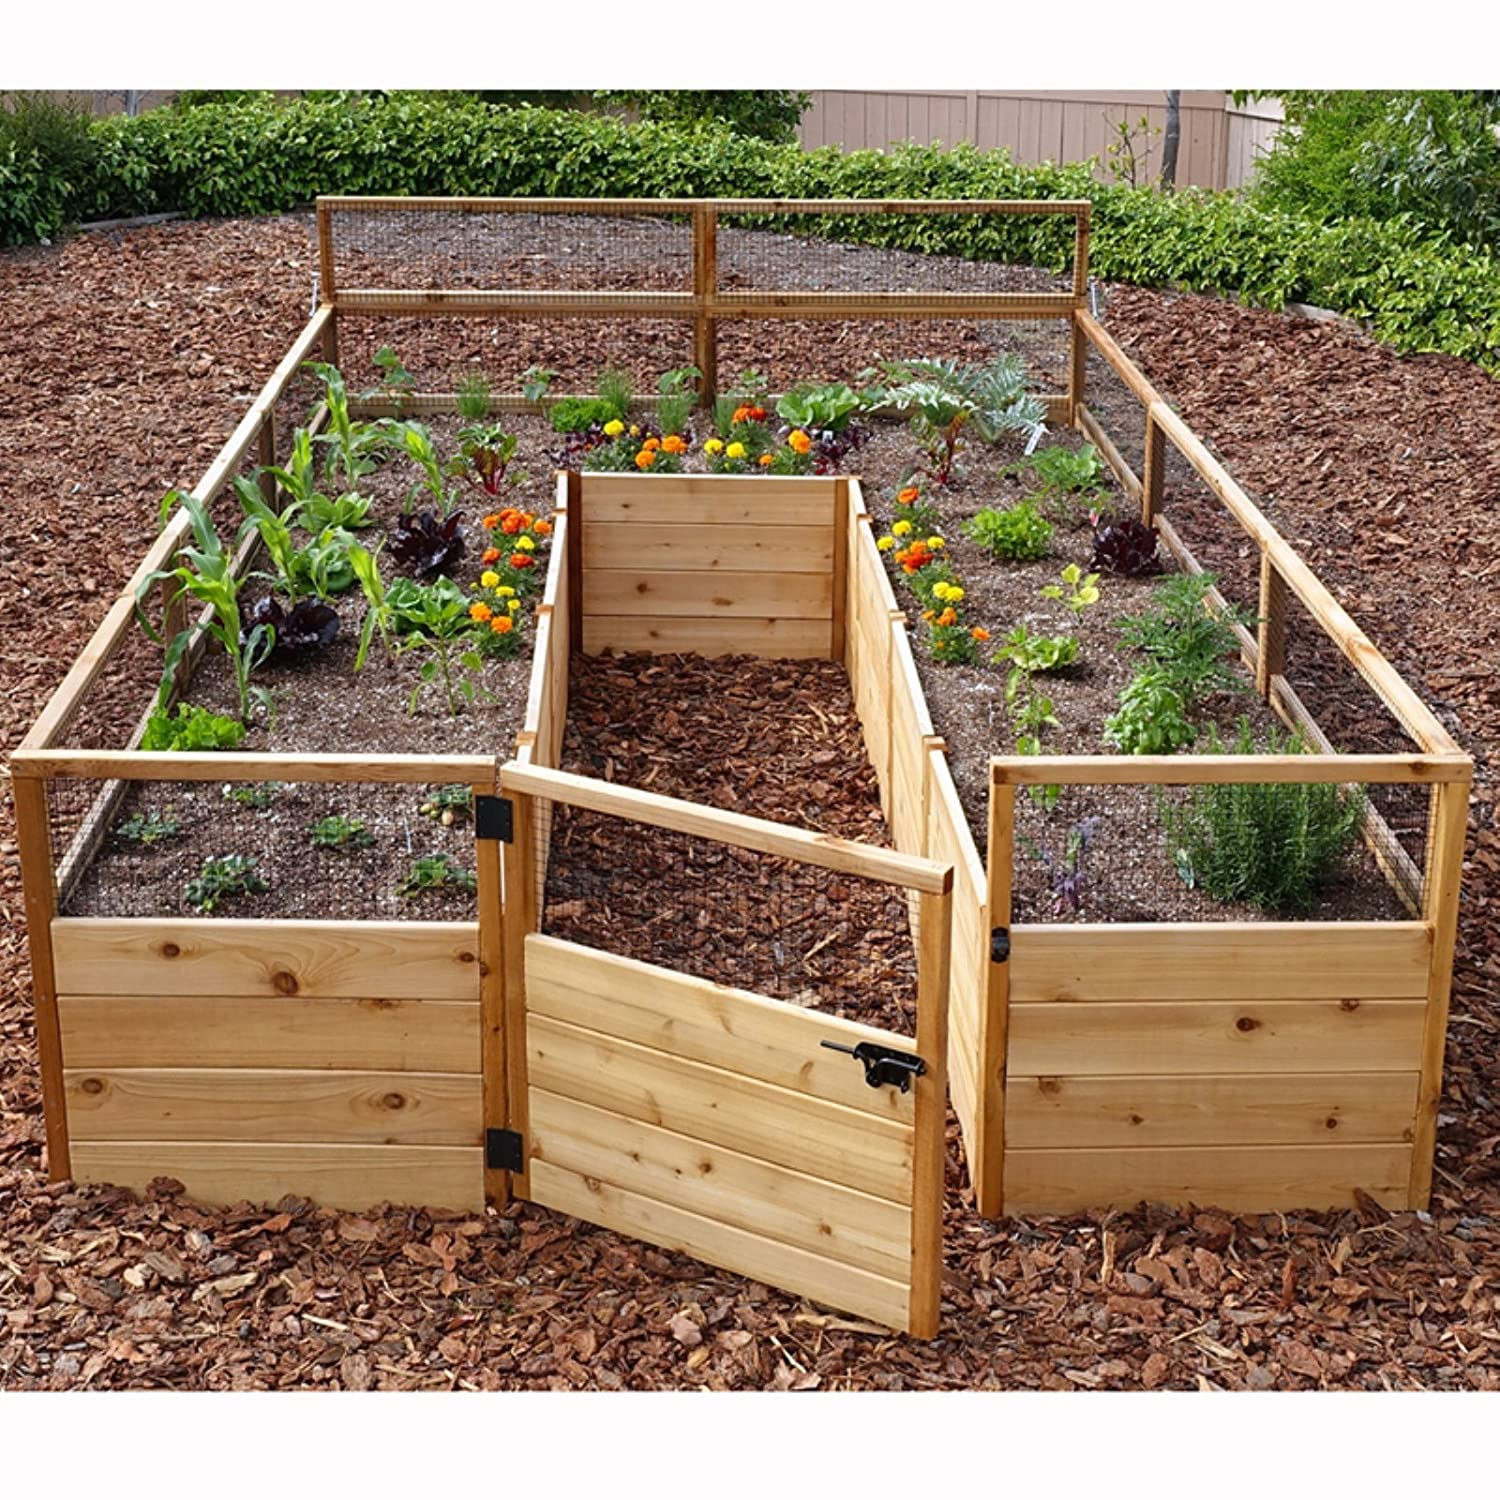 garden design decoration pertaining tiered home plans x with raised proportions outdoor trellis bed to beds kit cedar